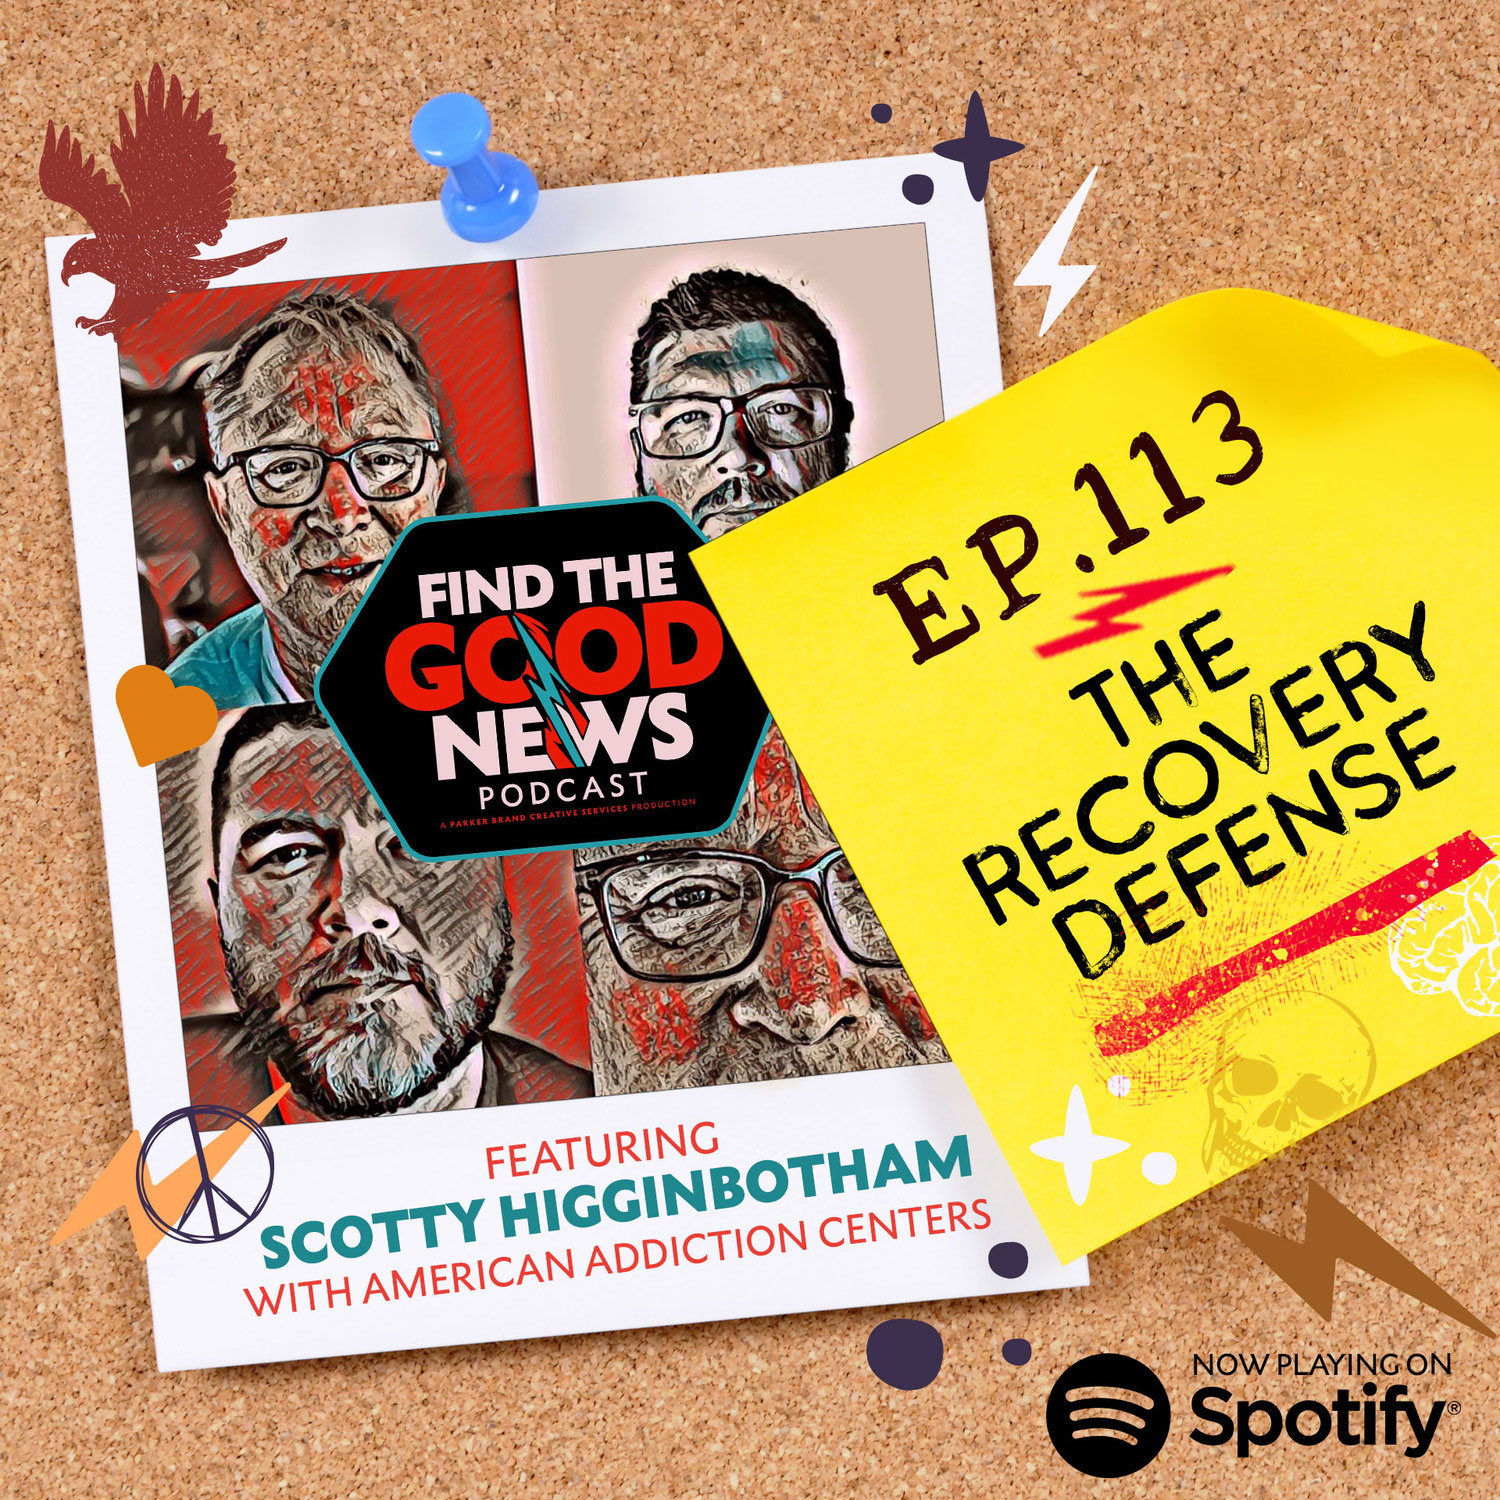 Episode 113—The Recovery Defense—ft. Scotty Higginbotham with American Addiction Centers